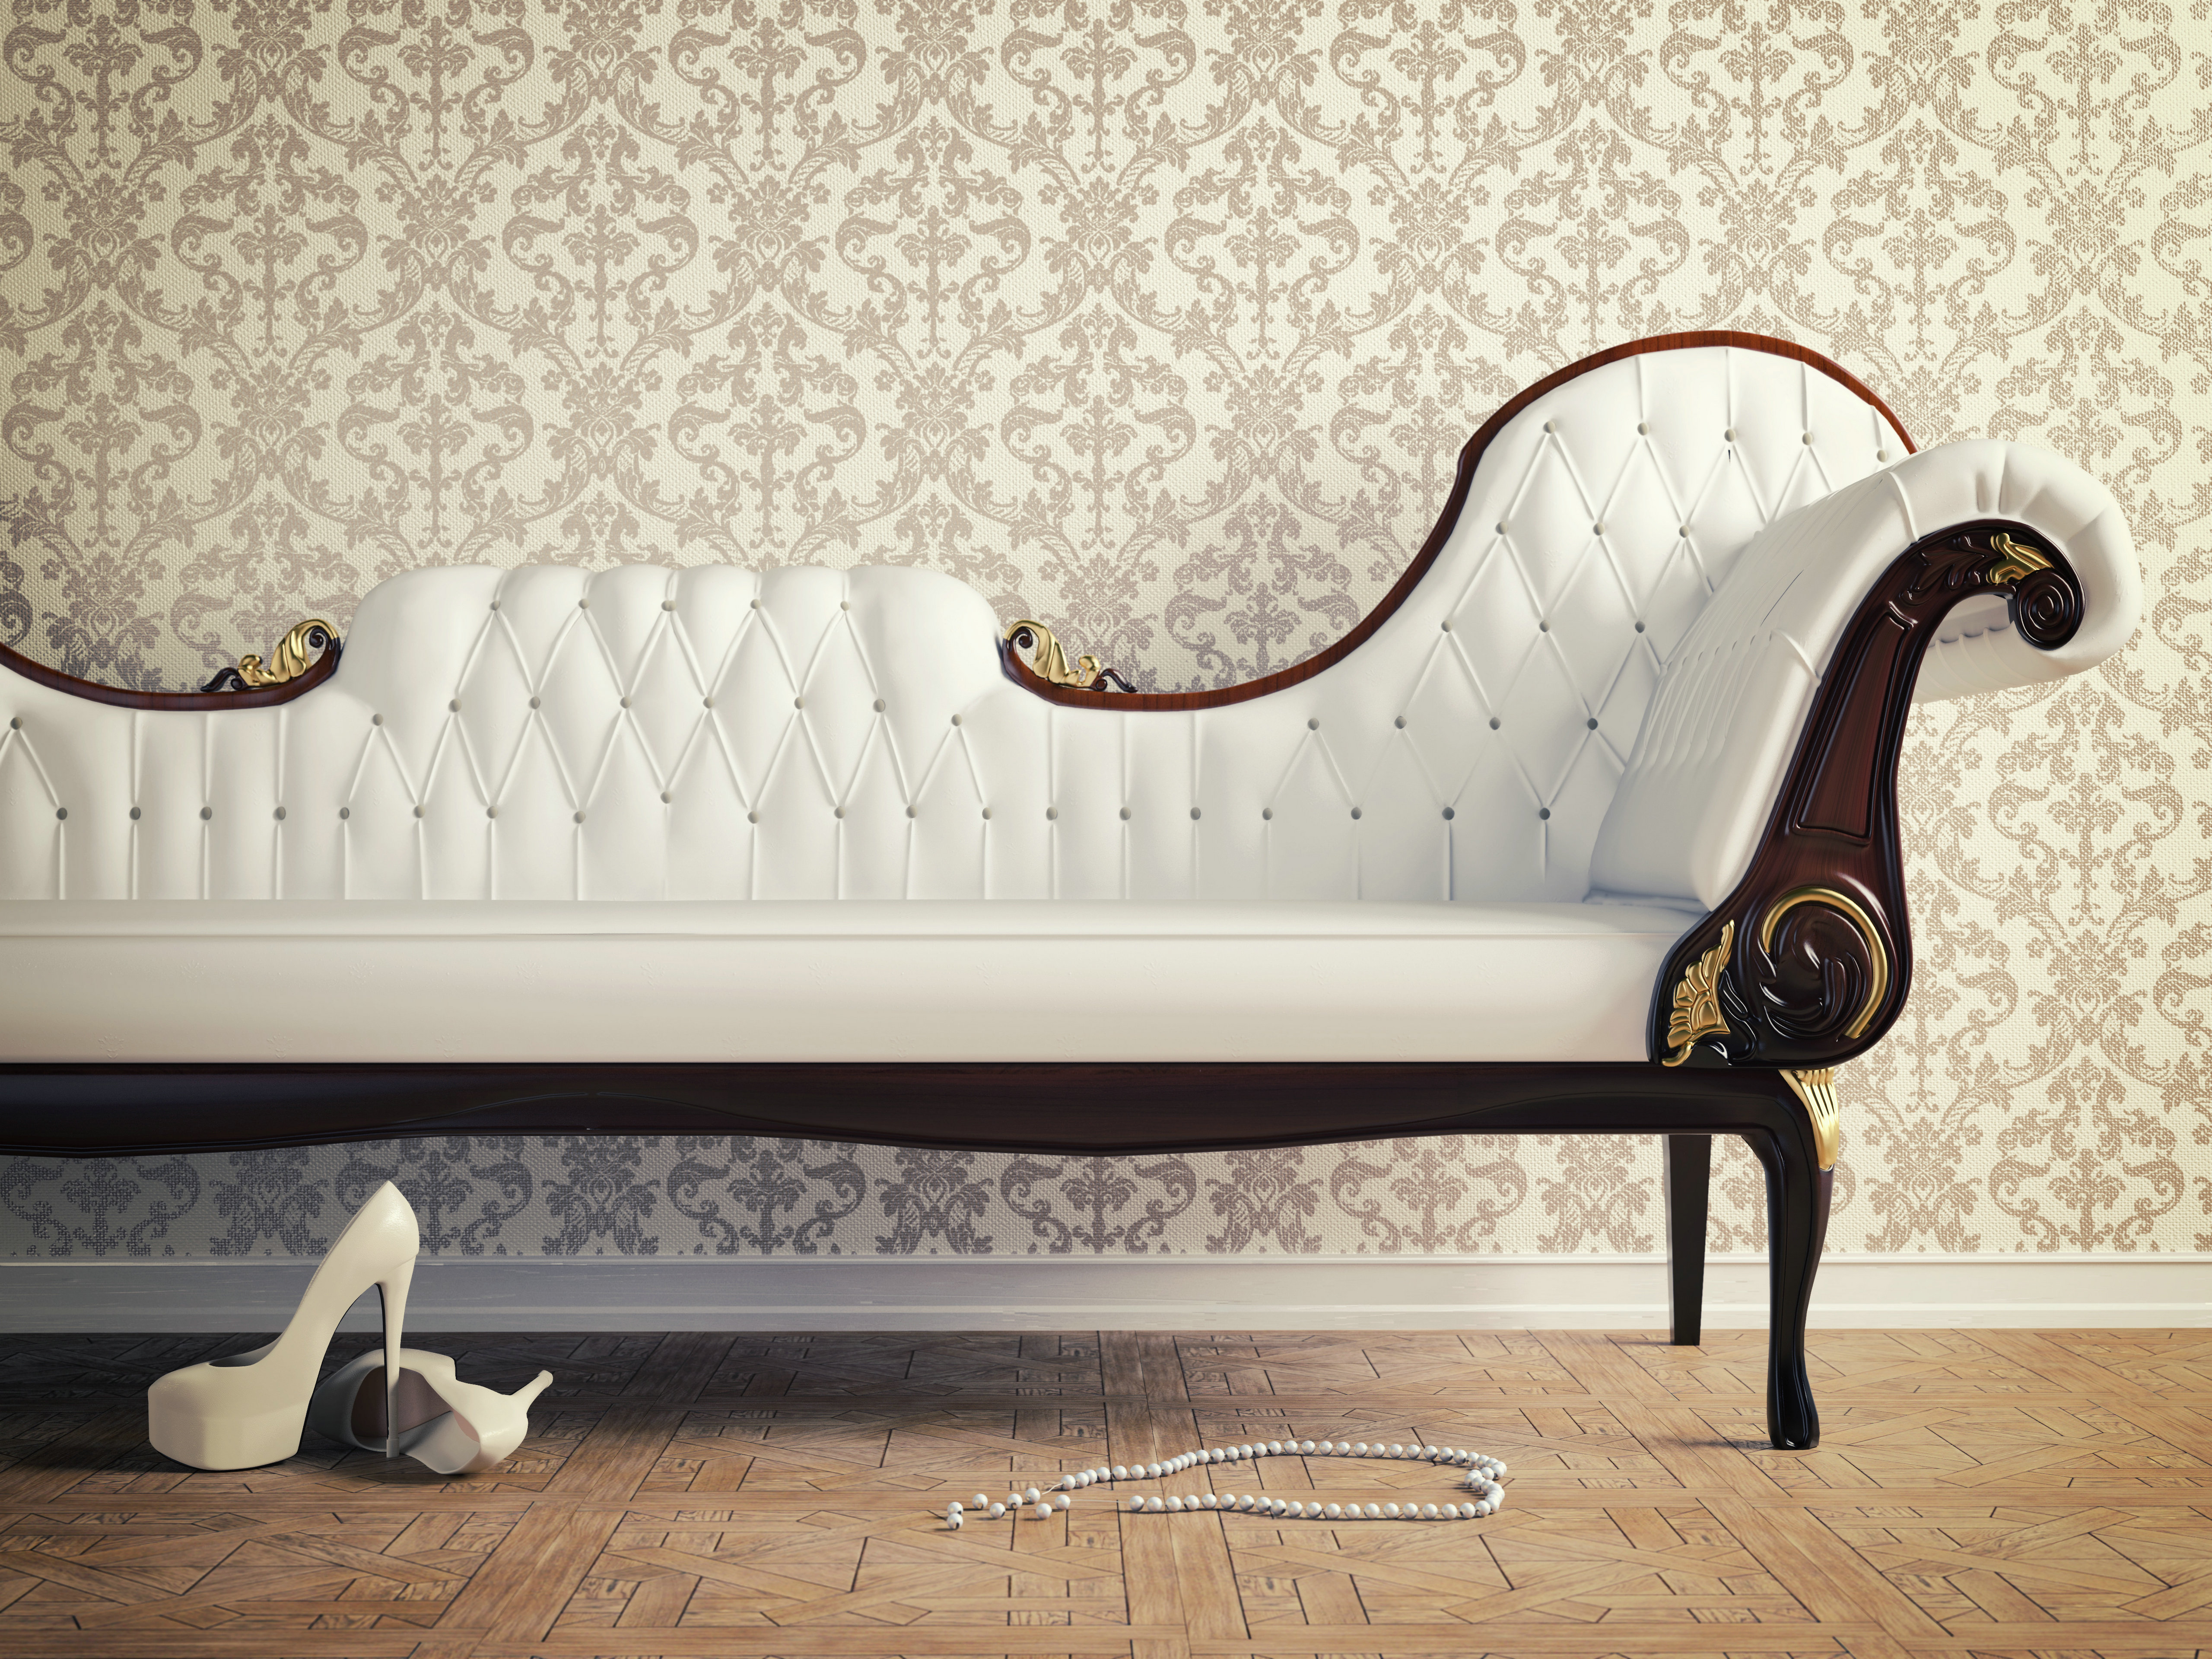 Wall upholstery in Vancouver   Wallpaper Installation Vancouver BC 5120x3840